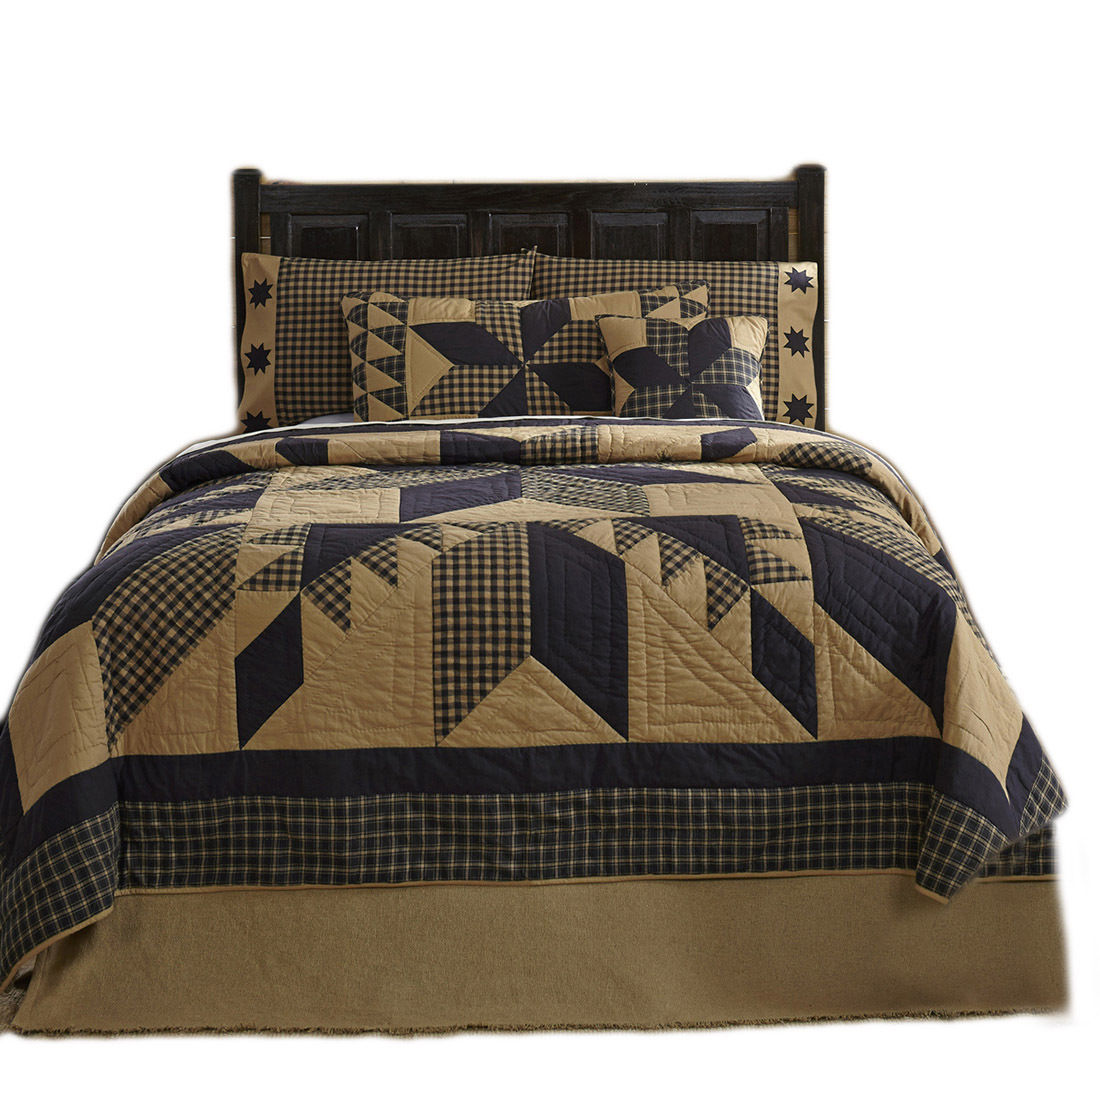 3-pc King - DAKOTA STAR Quilt and Shams Set - Rustic Black and Tan - VHC Brands